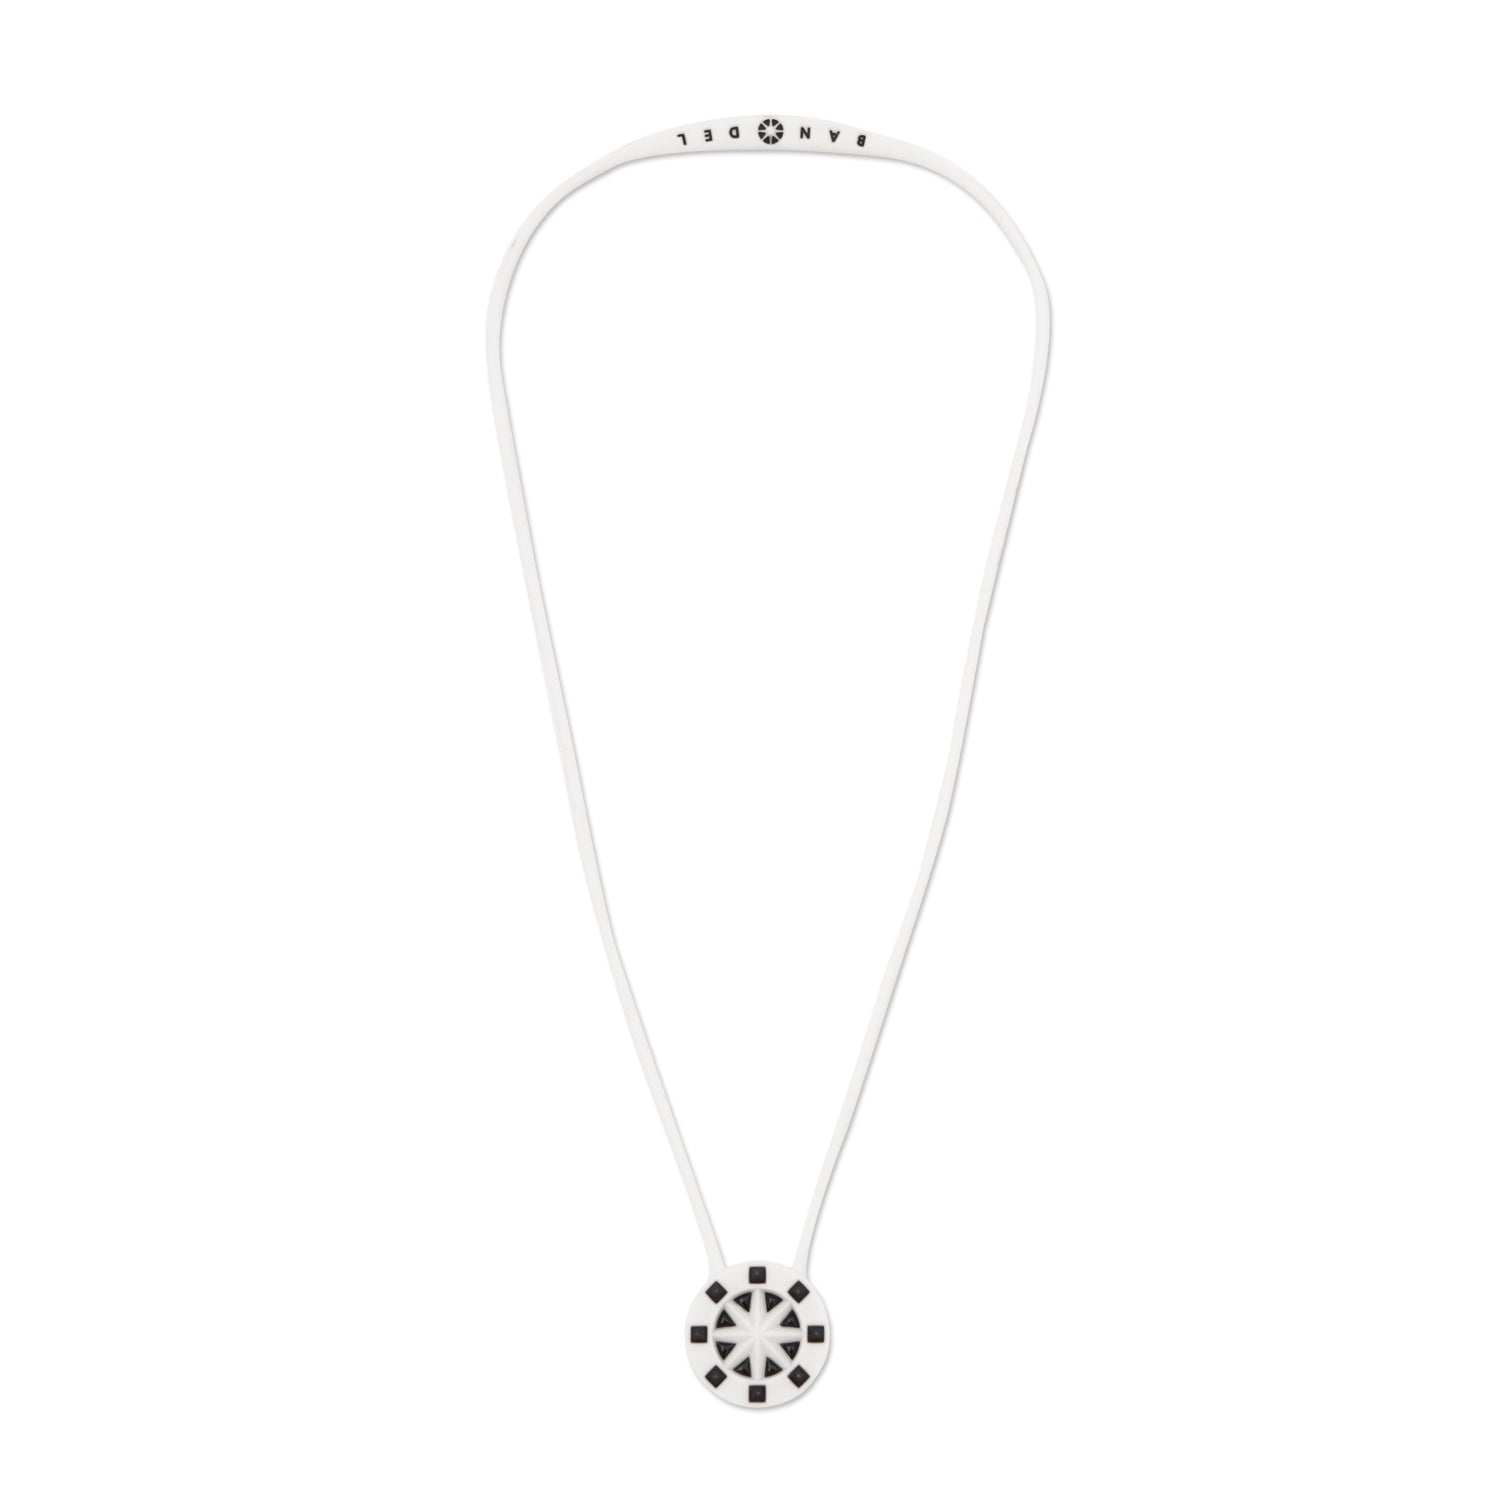 Bandel Studs Series Necklace White/Black